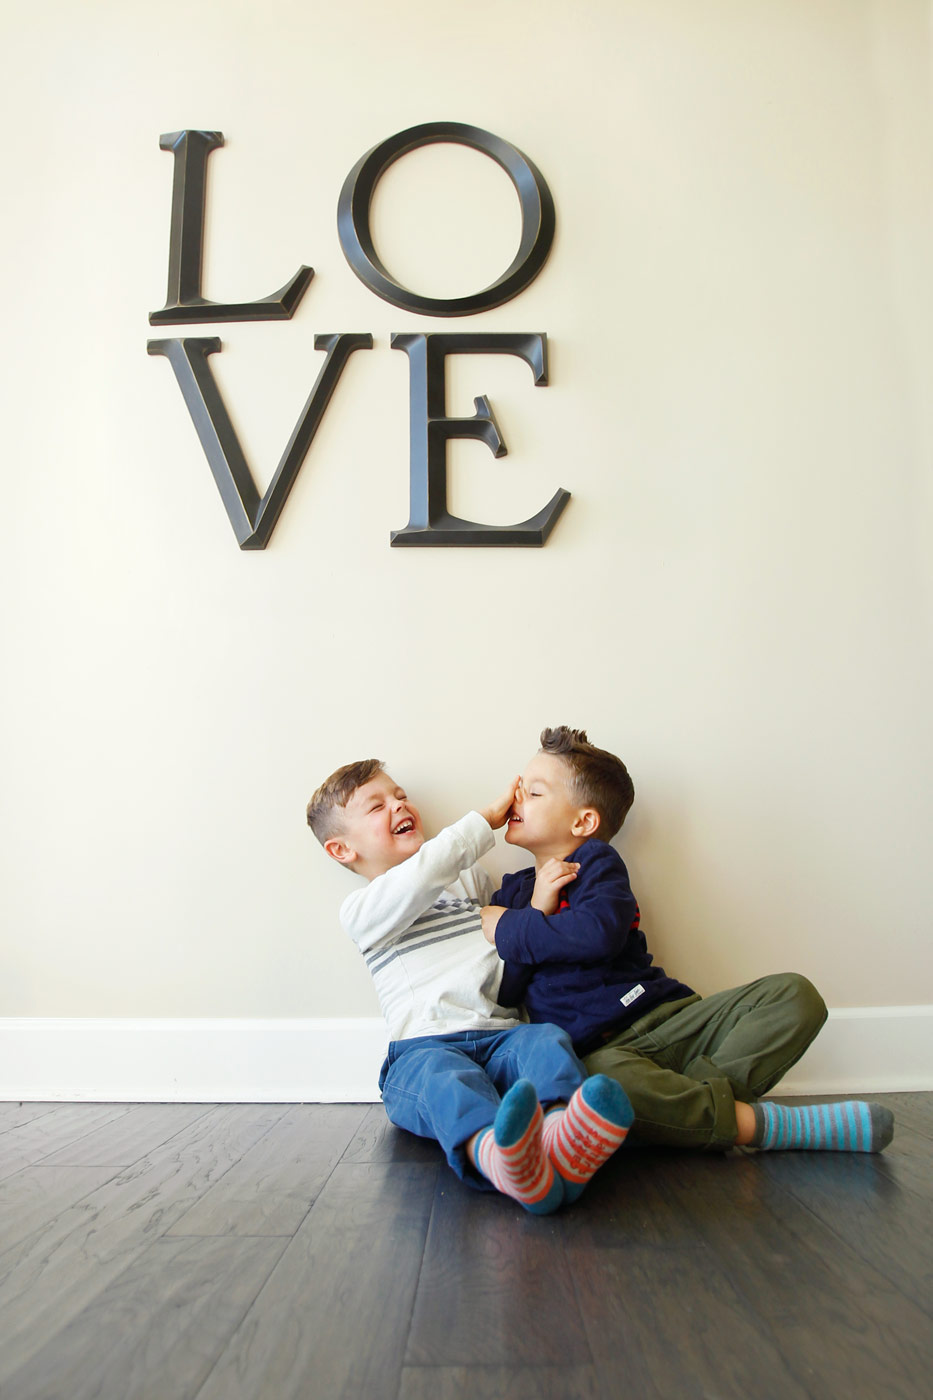 Love-Twins-Lifestyle-Photography-Journalistic-Alternative-Candid-Family-Portrait.jpg